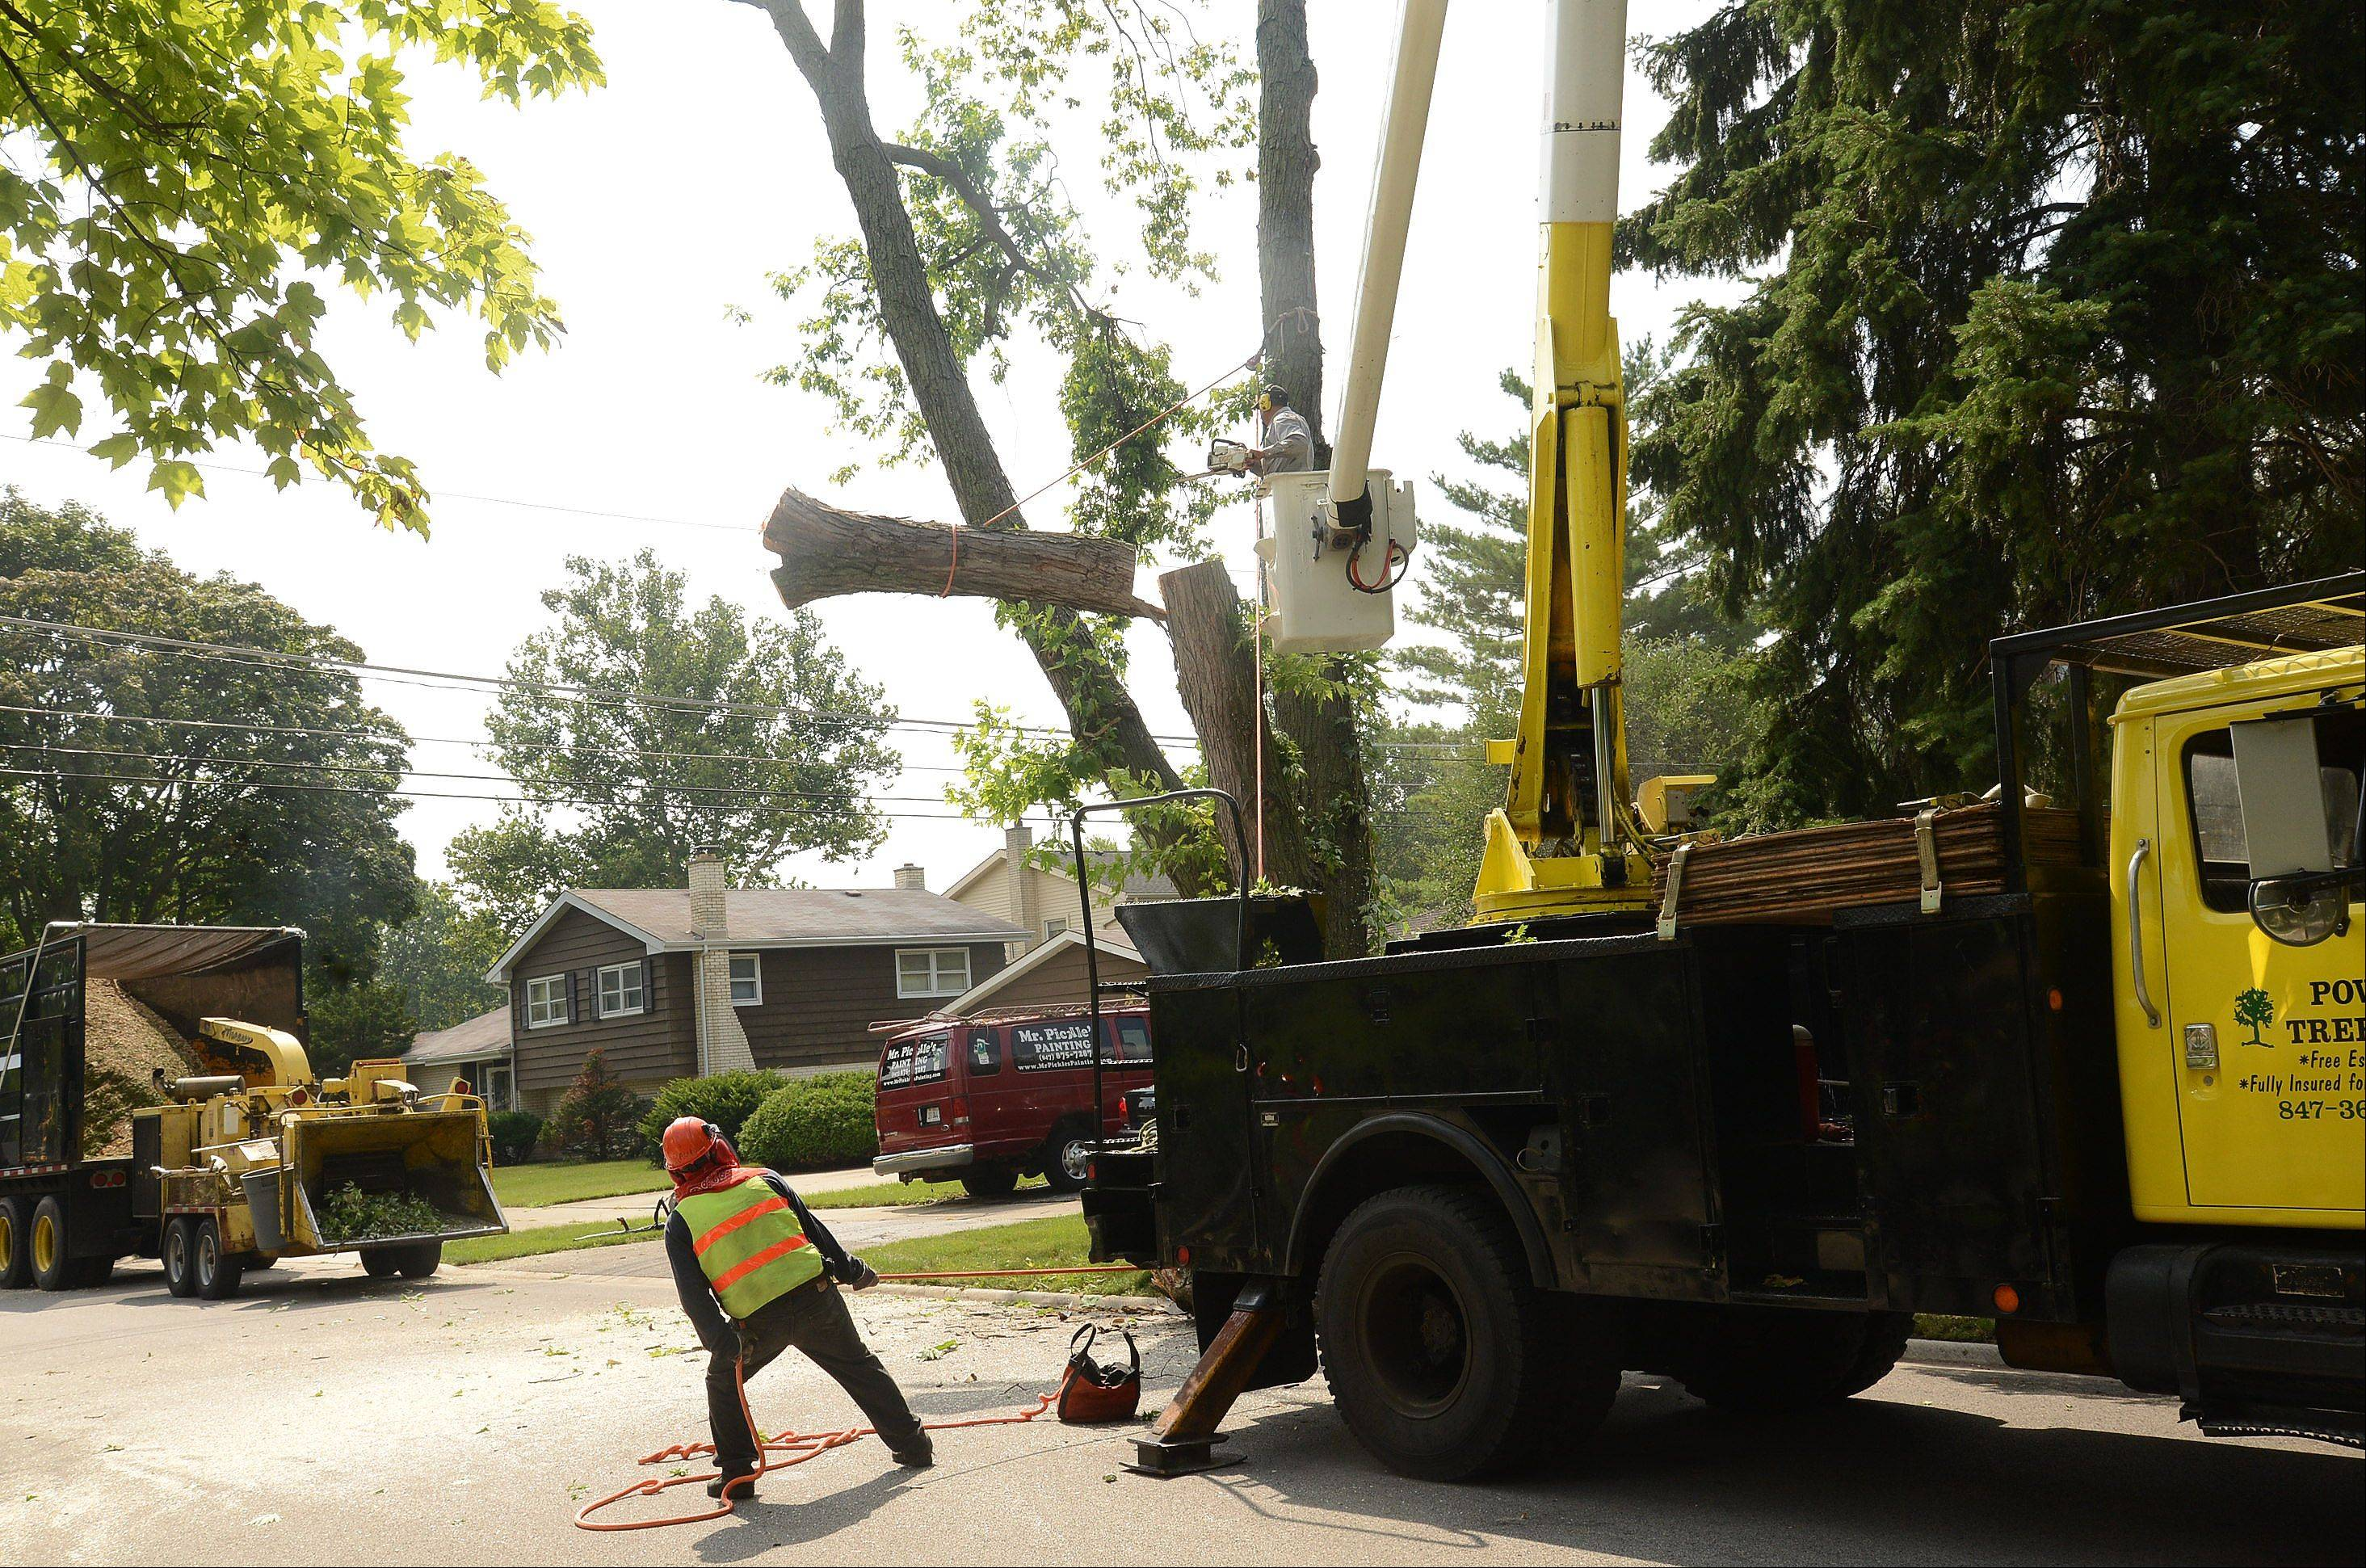 A crew from Powell Tree Care cuts down a tree on Park Street in Arlington Heights.